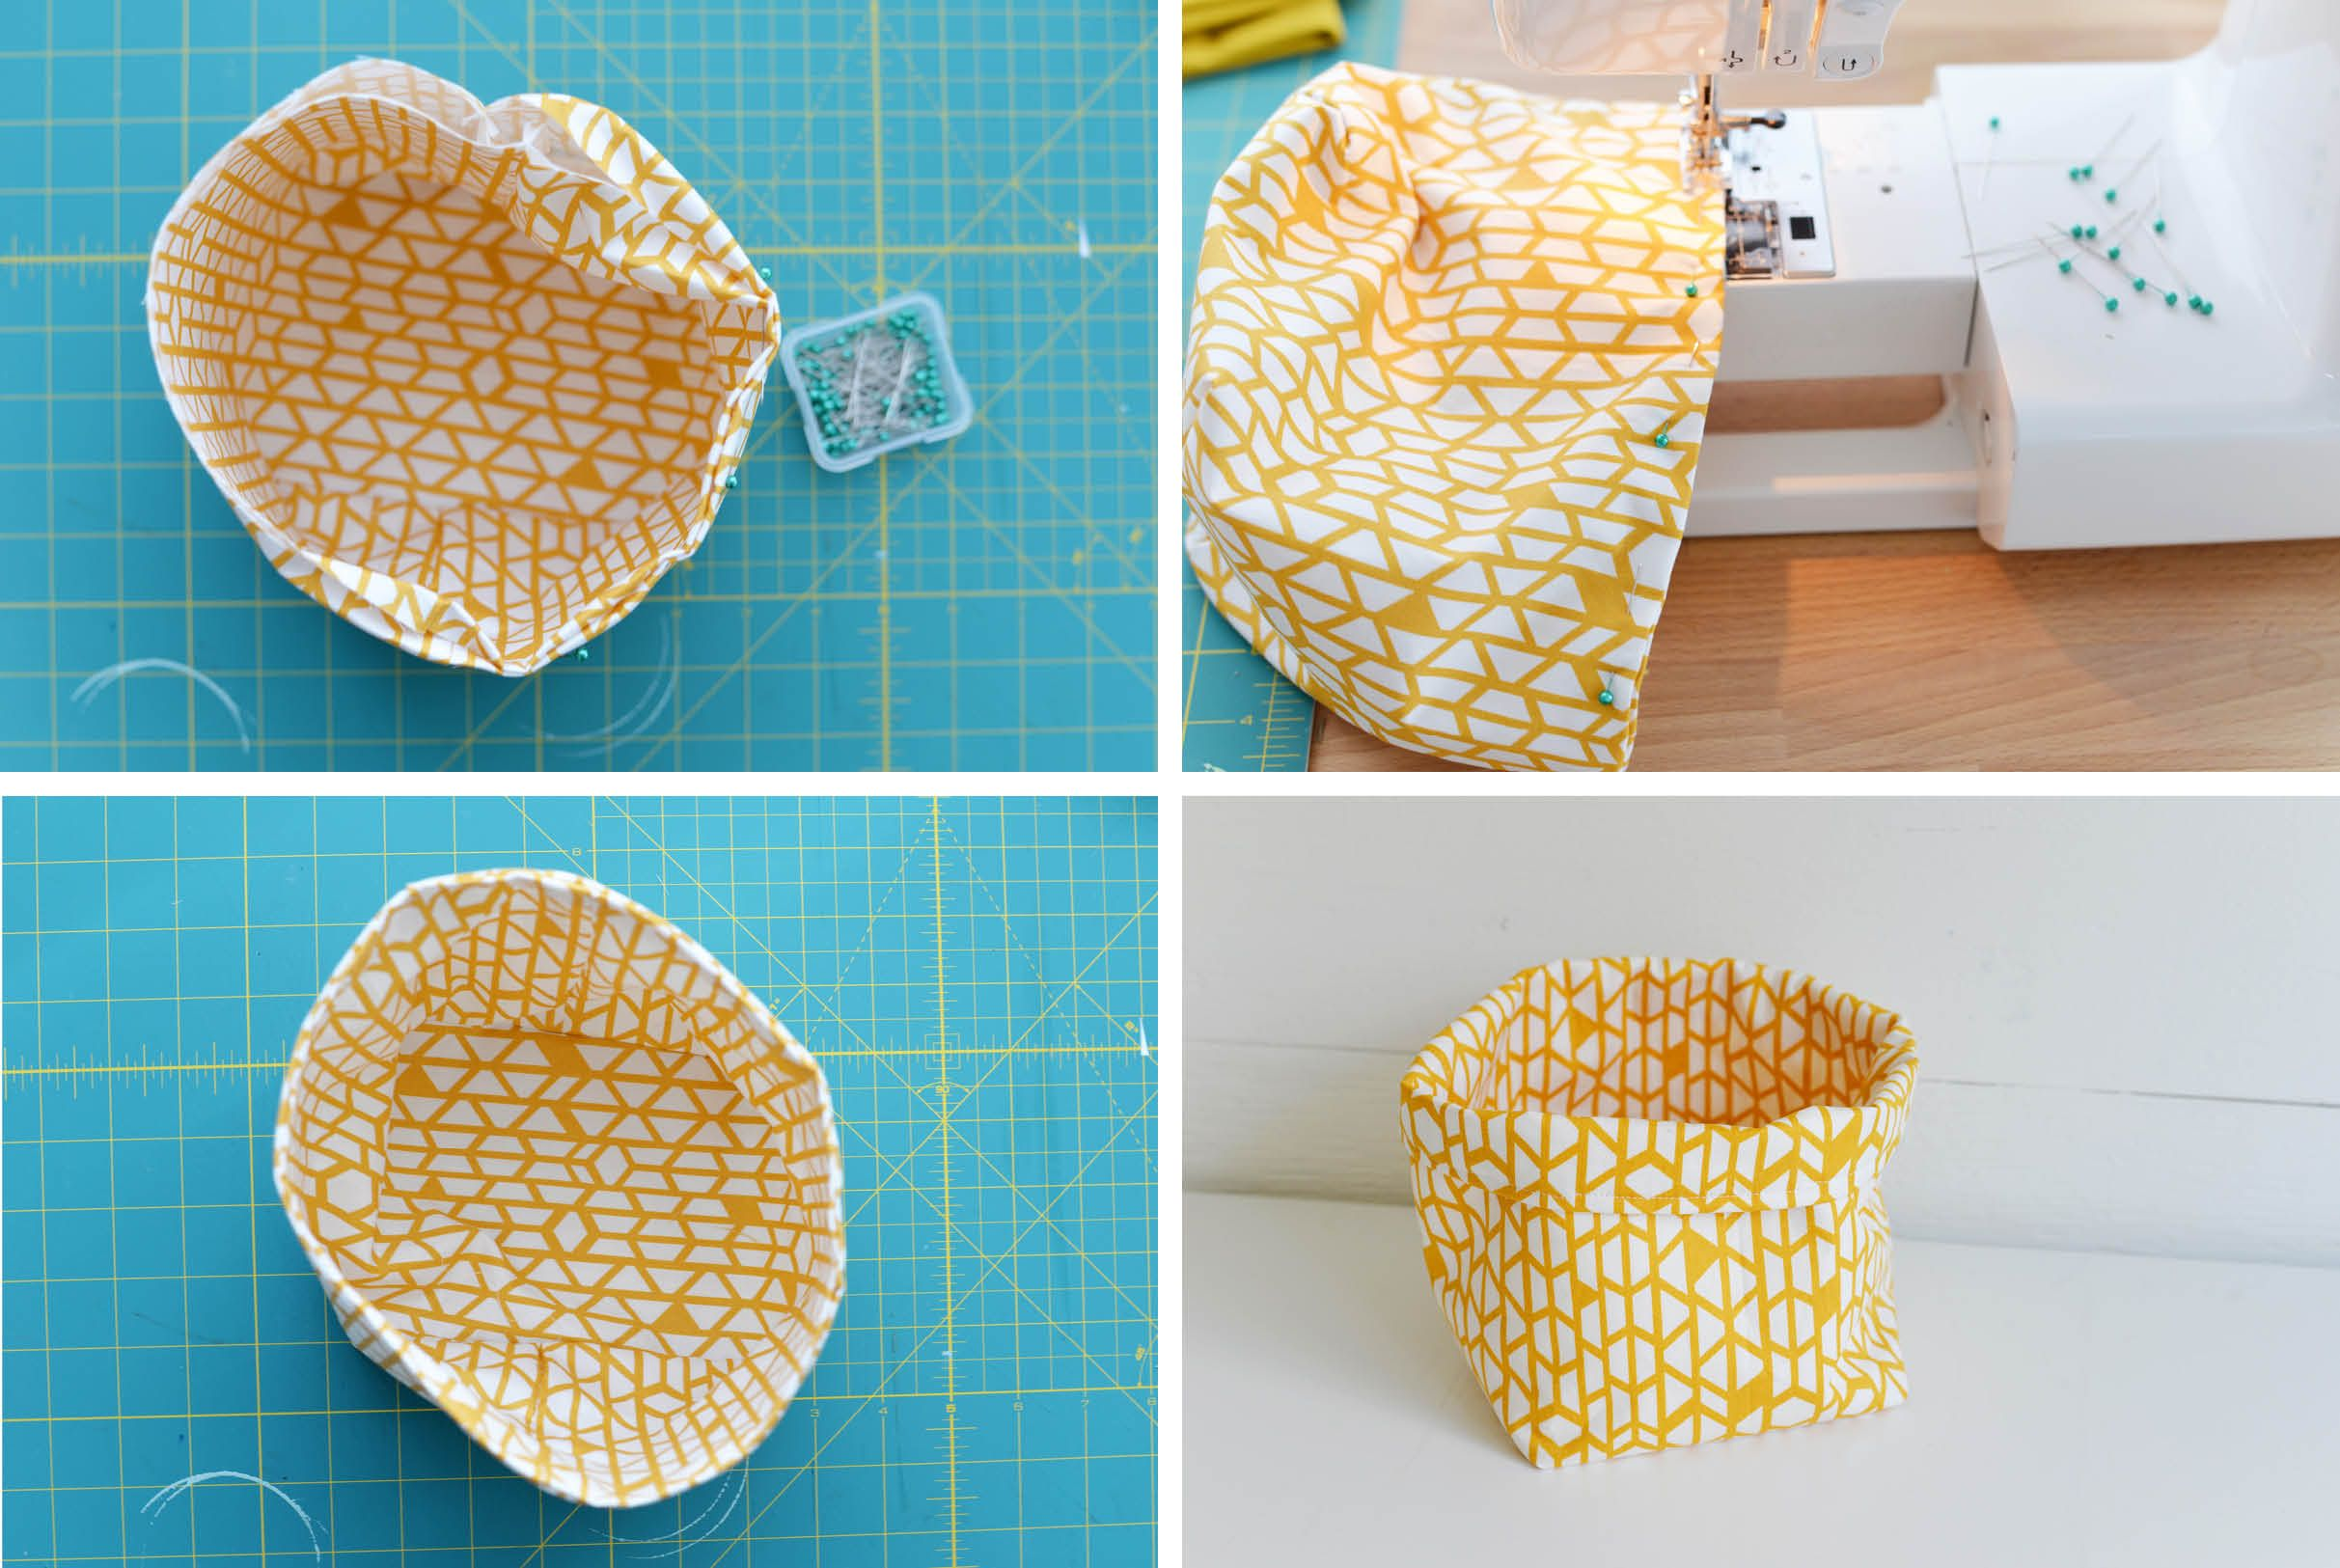 DIY Fabric Basket Step 4